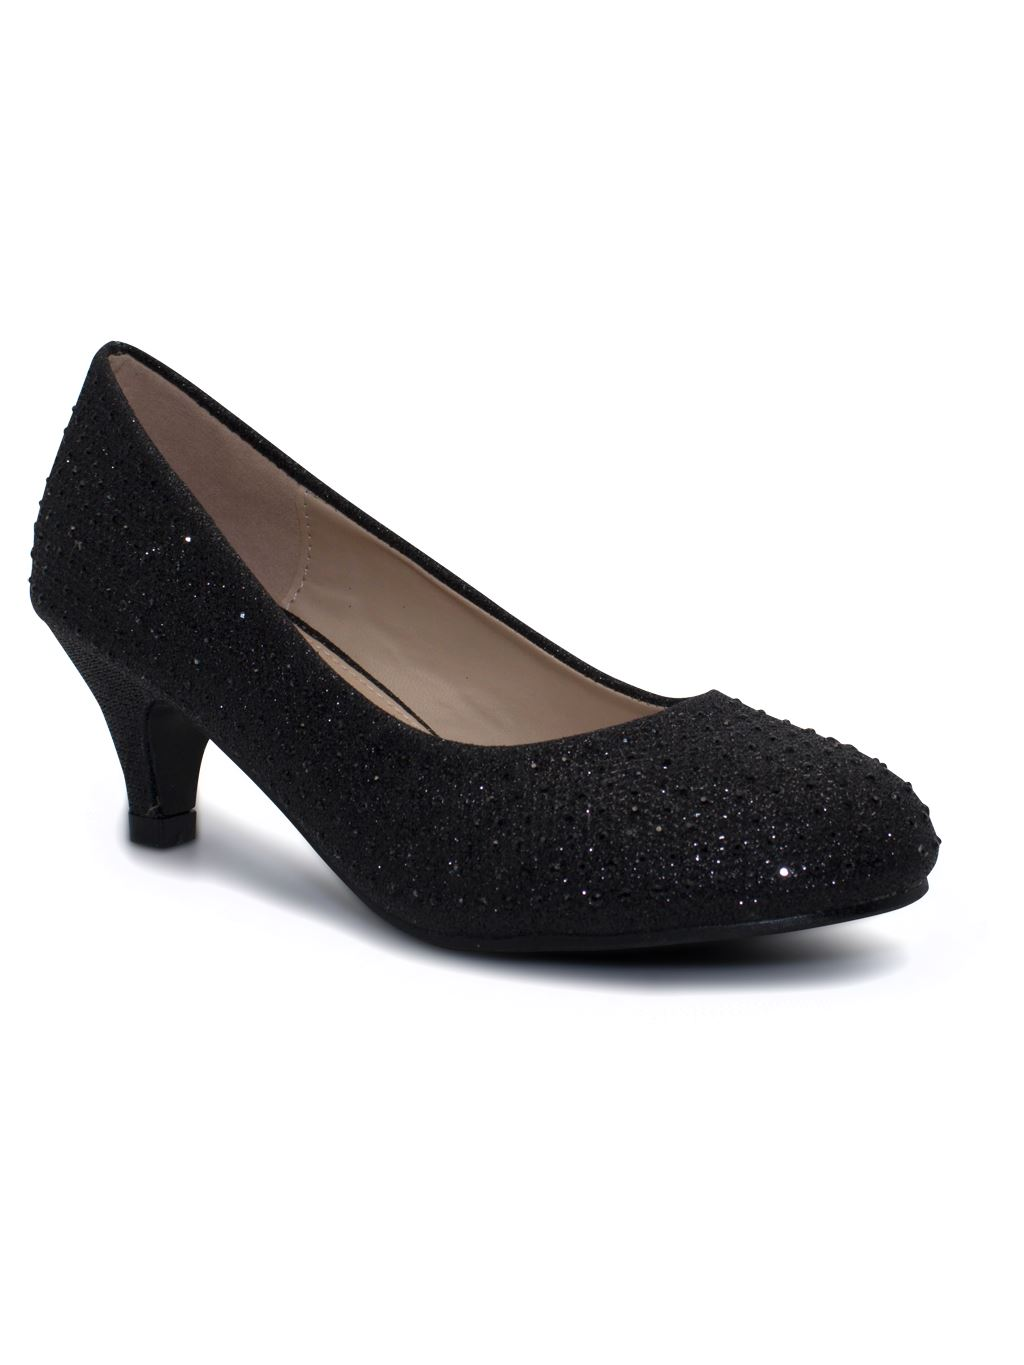 Girls Shoes Party Bridesmaid Glitter Diamante Wedding Low Heel Shoes